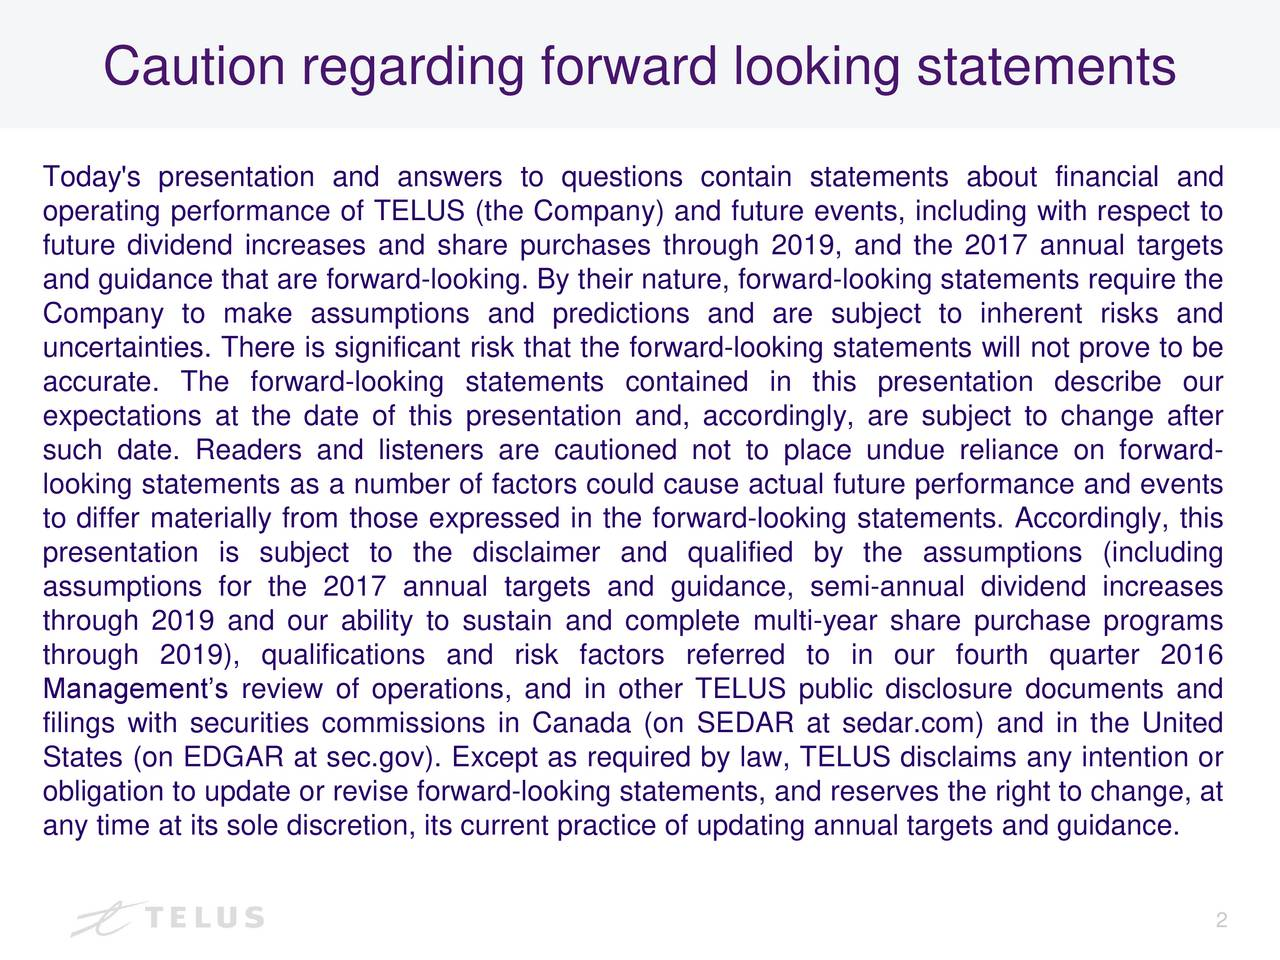 Today's presentation and answers to questions contain statements about financial and operating performance of TELUS (the Company) and future events, including with respect to future dividend increases and share purchases through 2019, and the 2017 annual targets and guidance that are forward-looking. By their nature, forward-looking statements require the Company to make assumptions and predictions and are subject to inherent risks and uncertainties. There is significant risk that the forward-looking statements will not prove to be accurate. The forward-looking statements contained in this presentation describe our expectations at the date of this presentation and, accordingly, are subject to change after such date. Readers and listeners are cautioned not to place undue reliance on forward- looking statements as a number of factors could cause actual future performance and events to differ materially from those expressed in the forward-looking statements. Accordingly, this presentation is subject to the disclaimer and qualified by the assumptions (including assumptions for the 2017 annual targets and guidance, semi-annual dividend increases through 2019 and our ability to sustain and complete multi-year share purchase programs through 2019), qualifications and risk factors referred to in our fourth quarter 2016 Managements review of operations, and in other TELUS public disclosure documents and filings with securities commissions in Canada (on SEDAR at sedar.com) and in the United States (on EDGAR at sec.gov). Except as required by law, TELUS disclaims any intention or obligation to update or revise forward-looking statements, and reserves the right to change, at any time at its sole discretion, its current practice of updating annual targets and guidance. 2